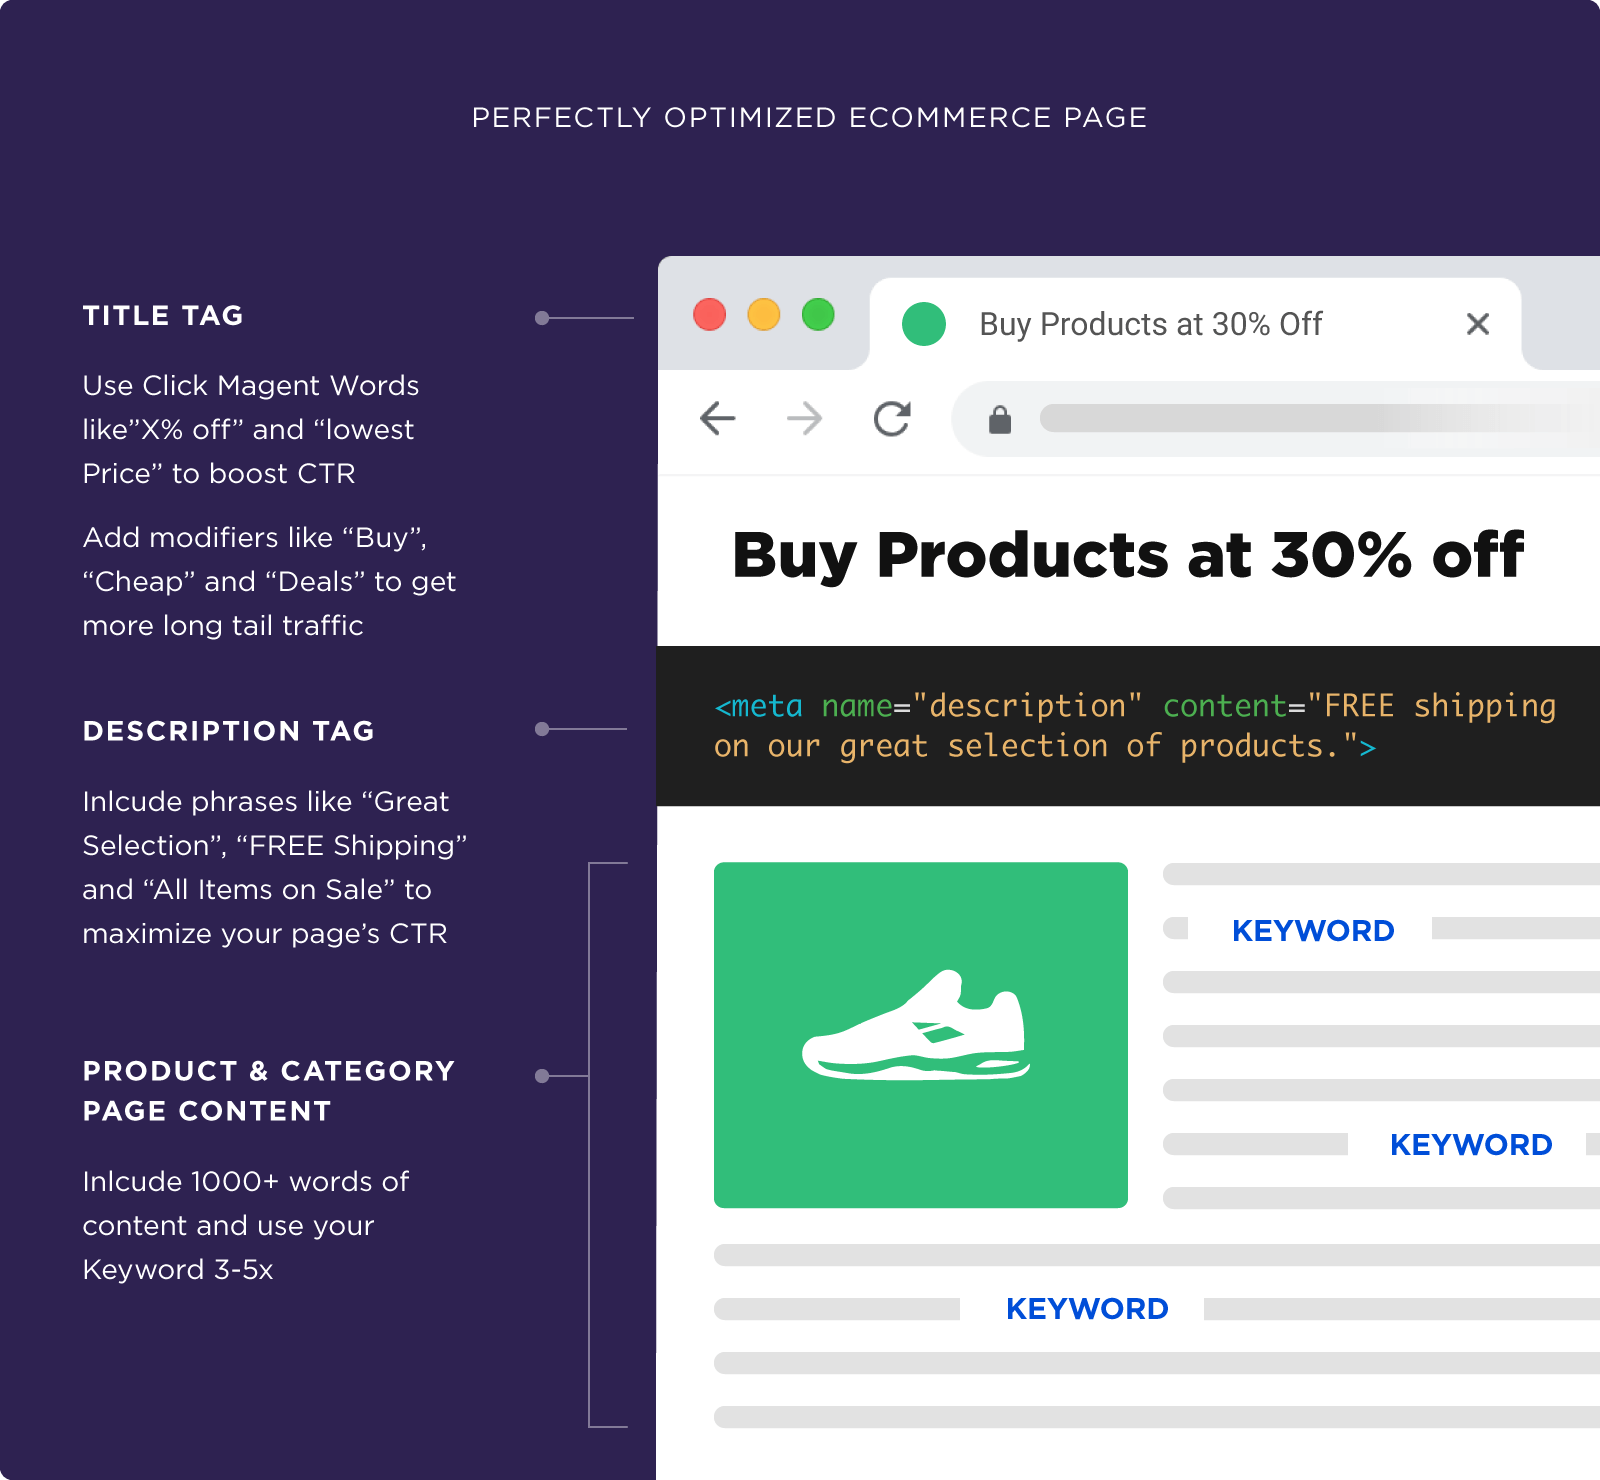 Perfectly optimized ecommerce page